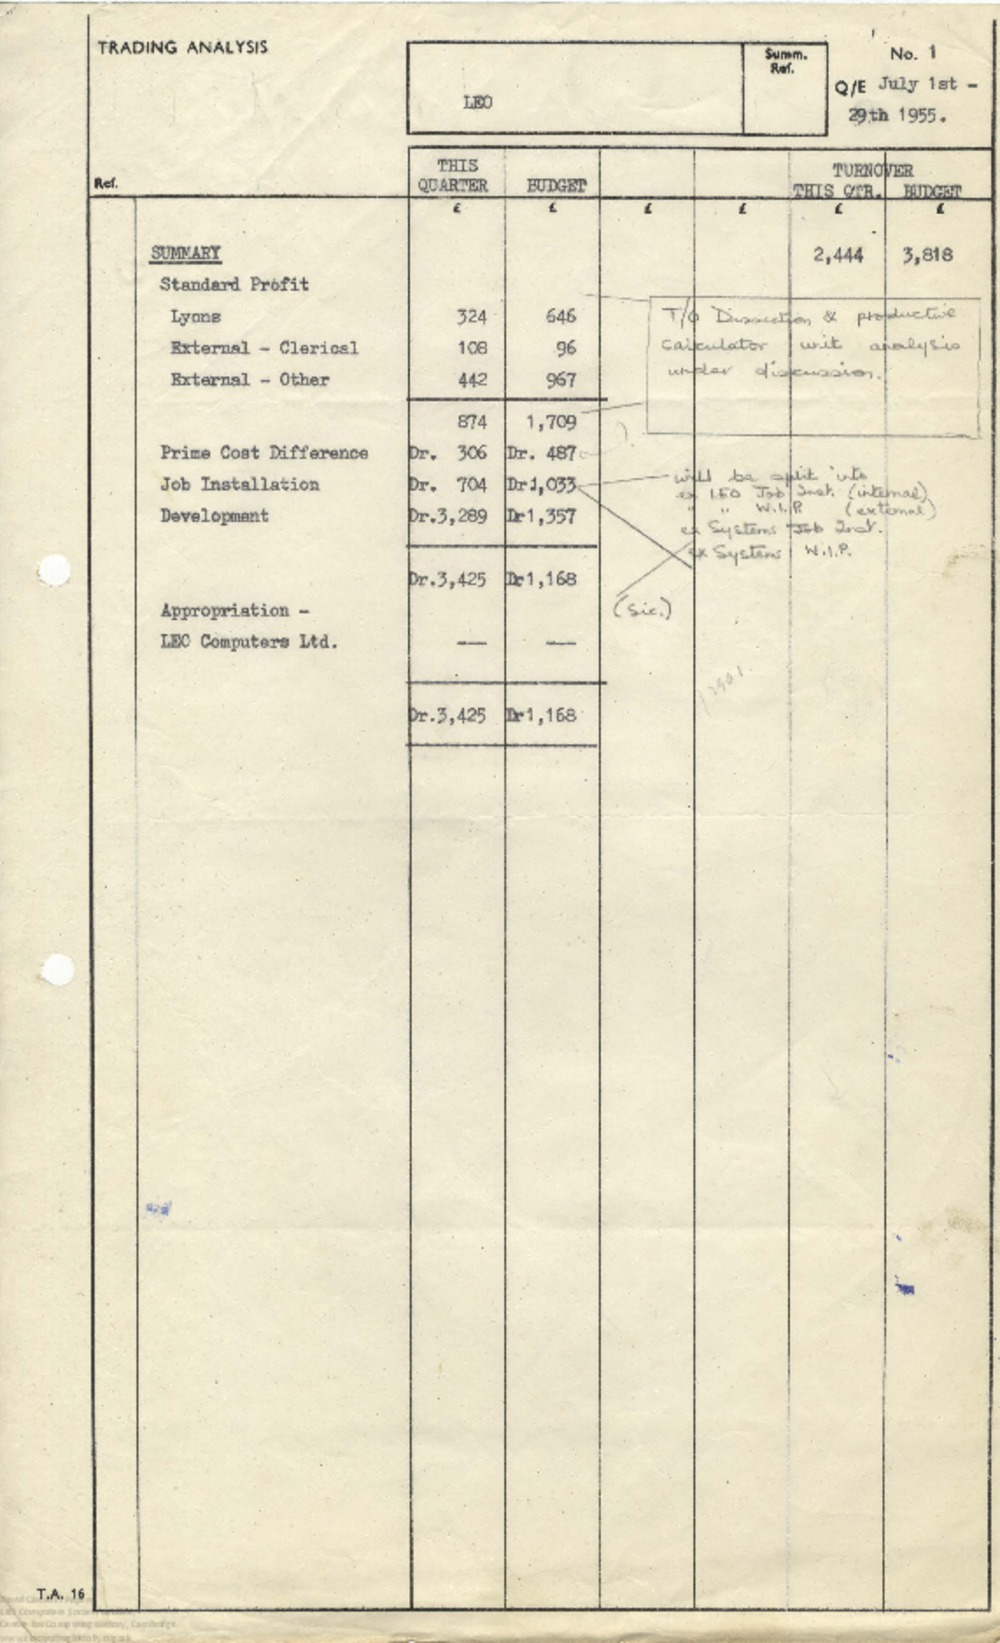 Article: 63031 September 1955 Quarter End - Correspondence and Trading Analysis